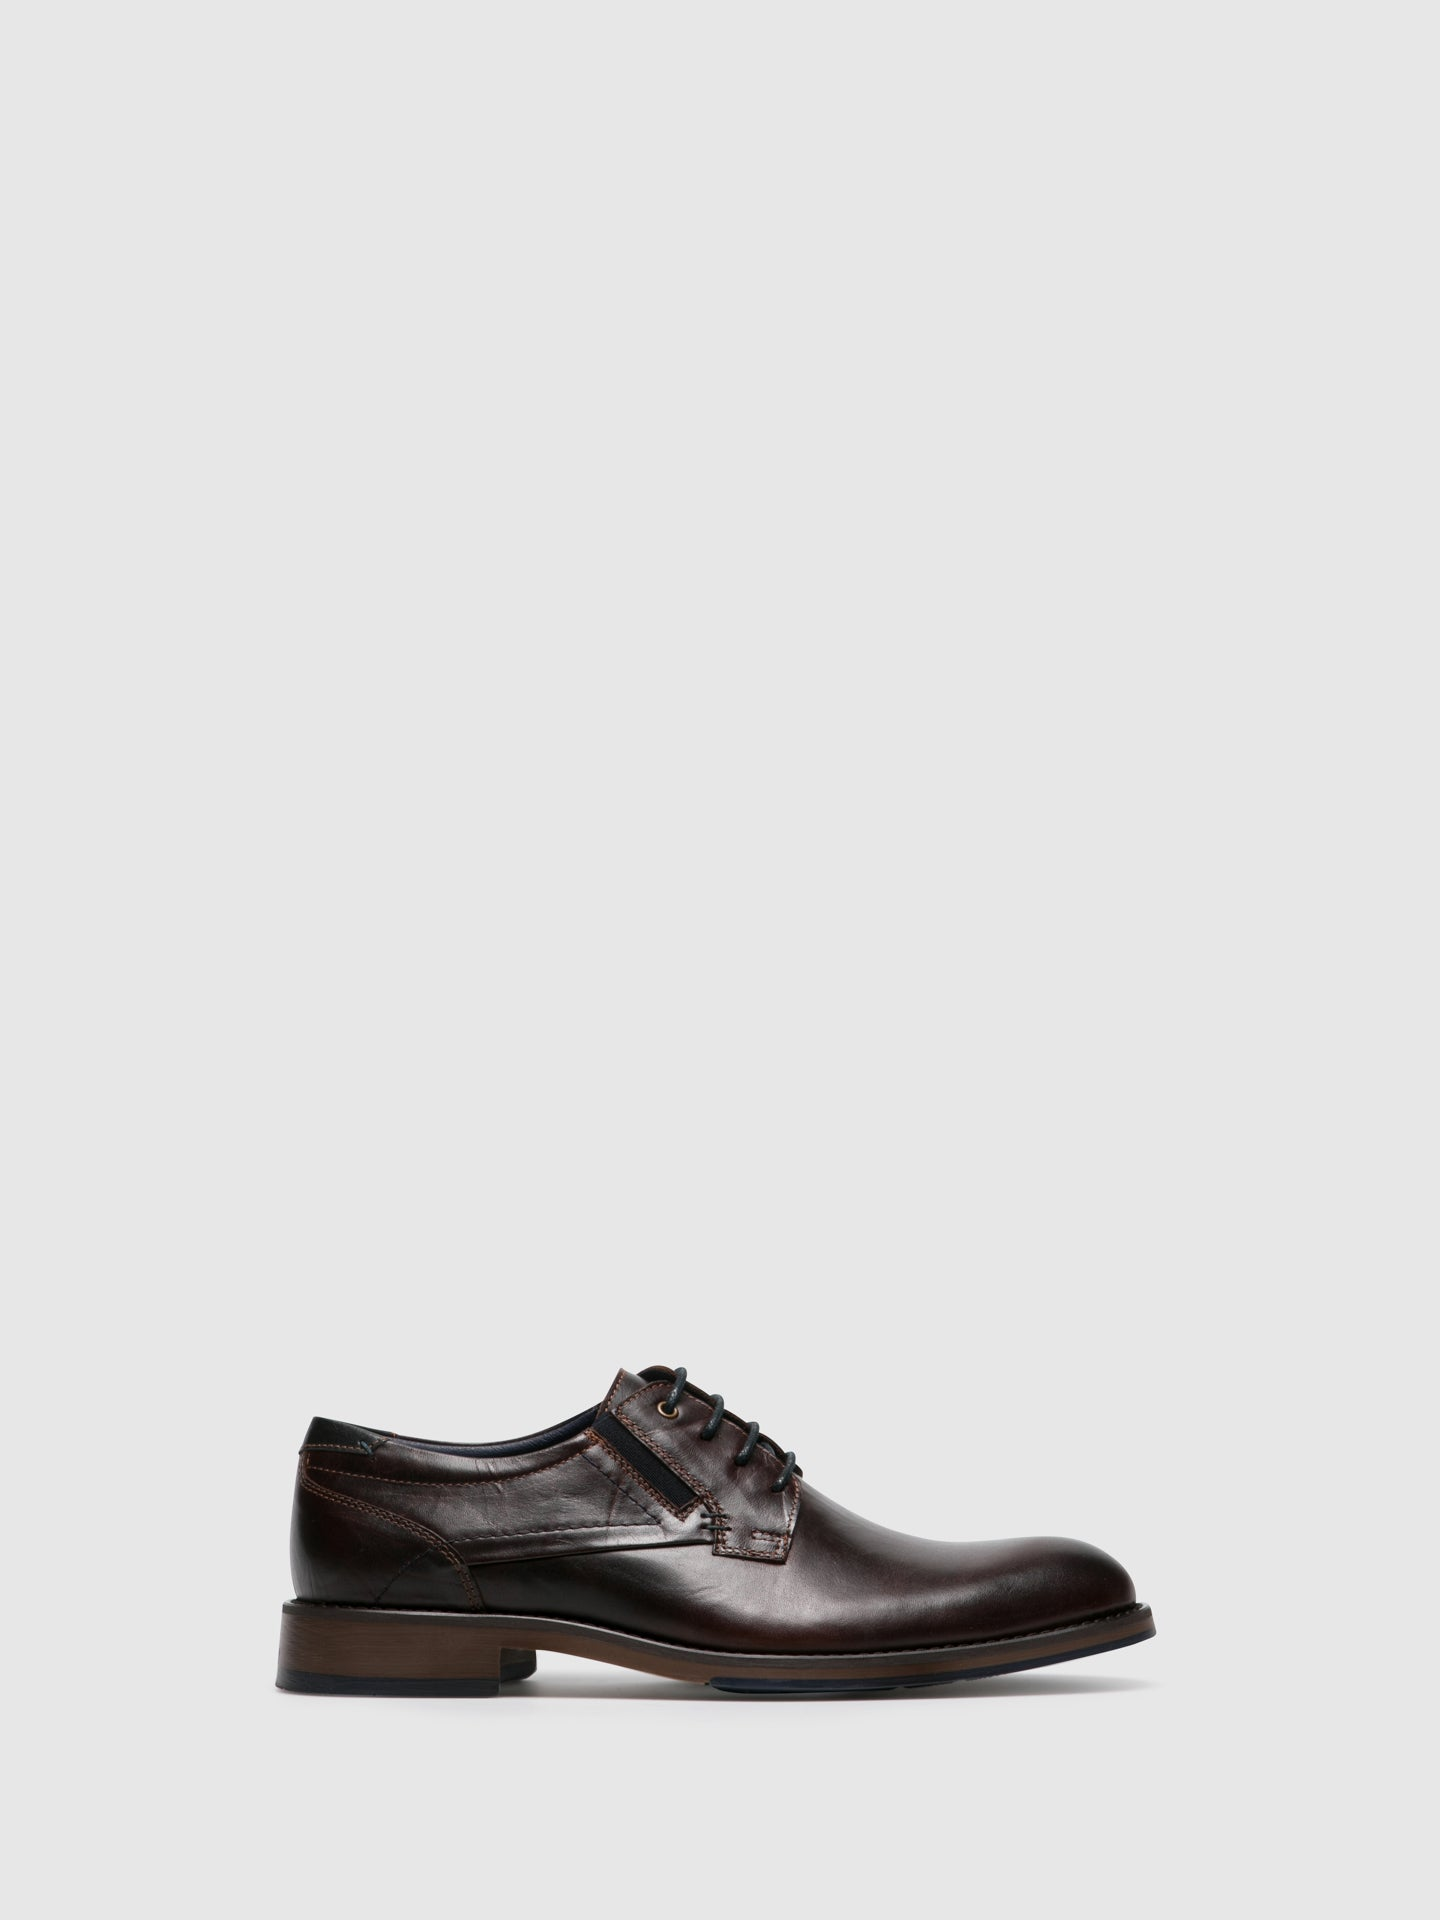 Foreva Chocolate Lace-up Shoes